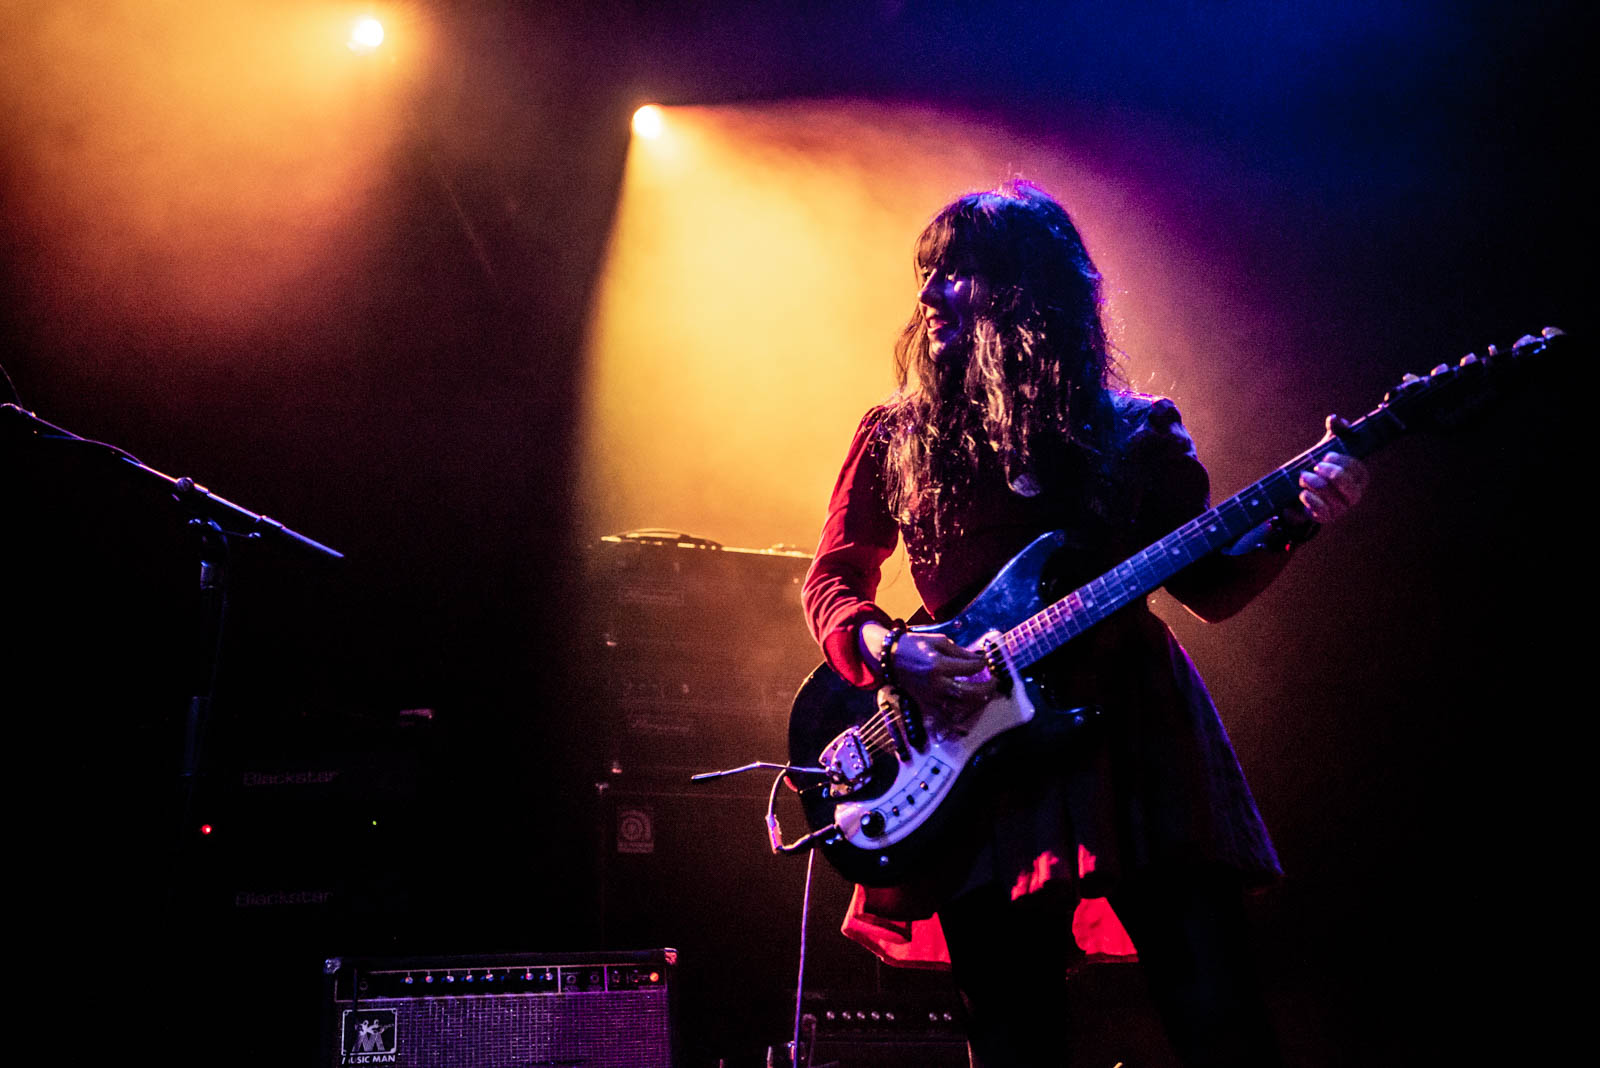 Bonnie Bloomgarden of Death Valley Girls performing at Brooklyn Steel on Thursday, April 12, 2018.